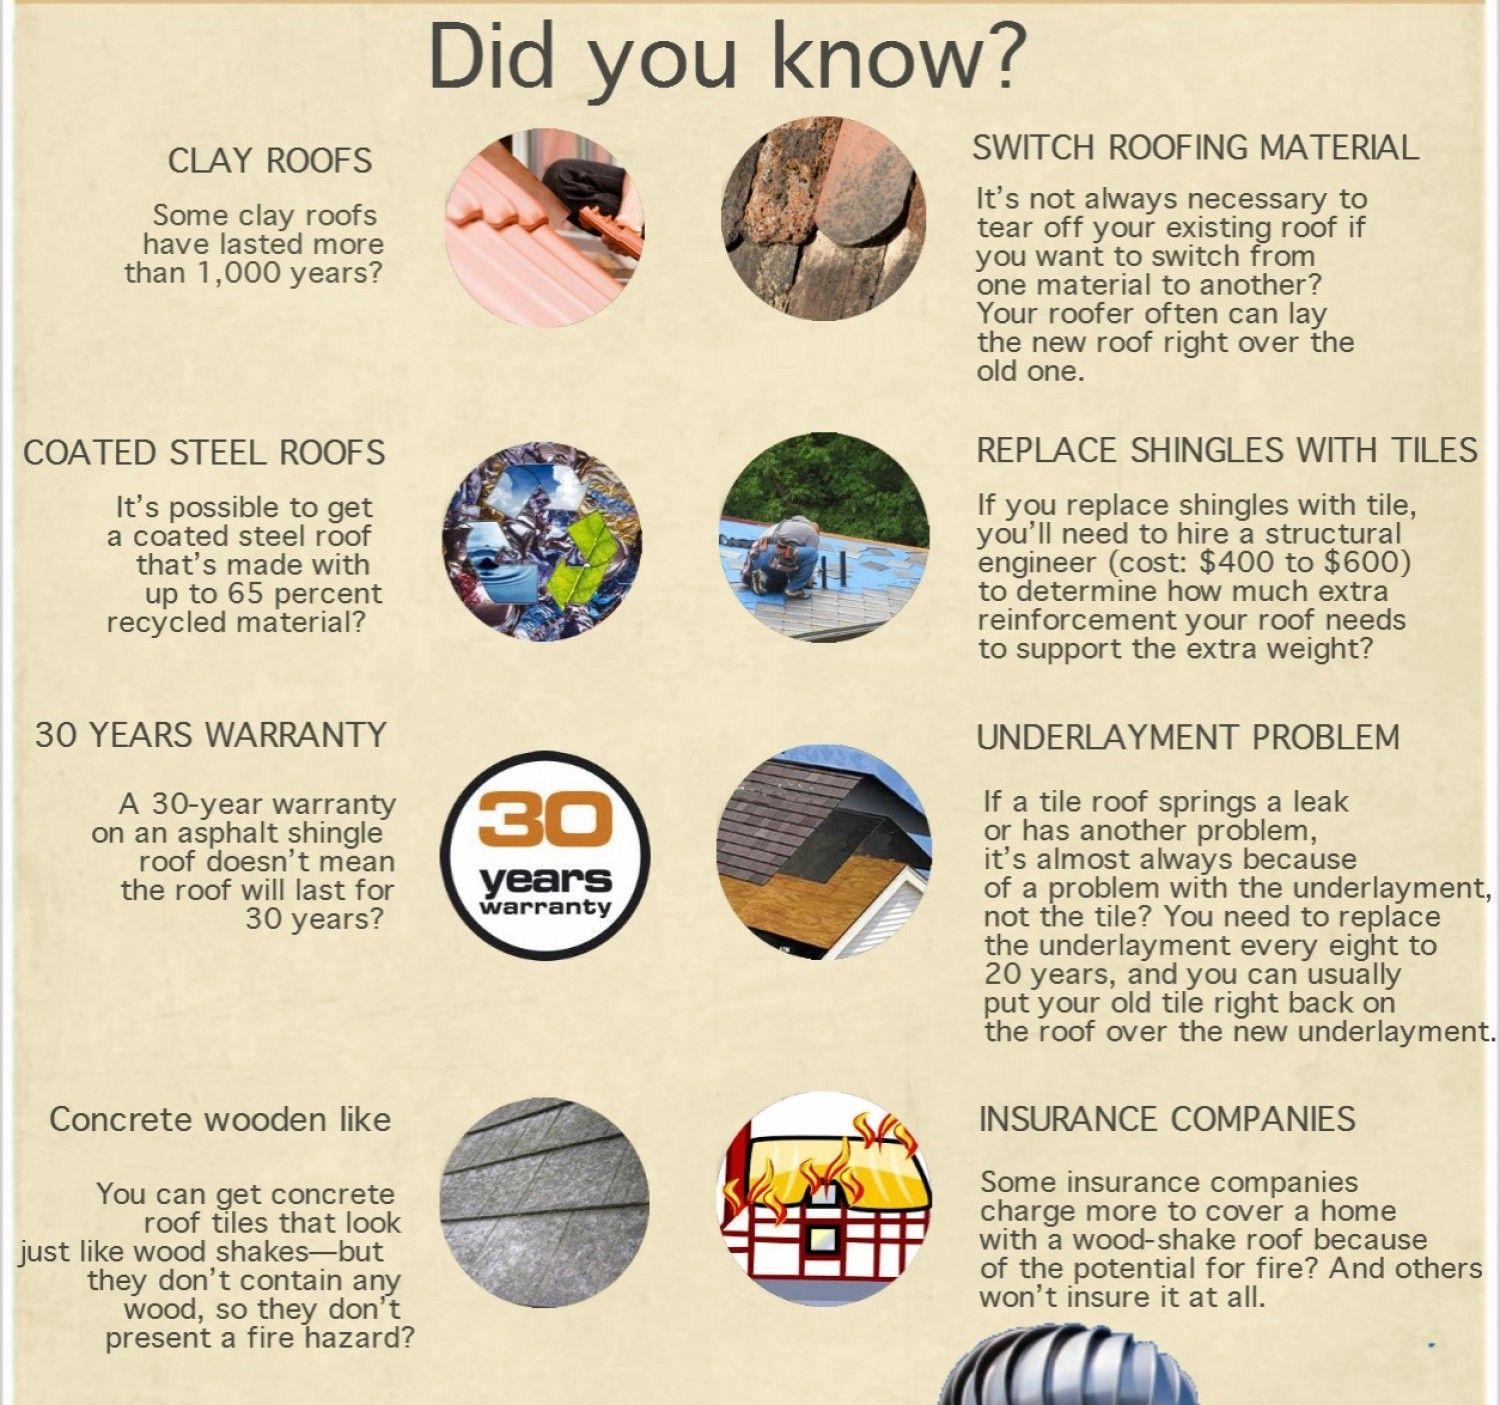 Fun Roofing Facts Did You Know Roofing Roofingcontractors Funfacts Homeimprovement Infiniteroofing Roofers Albany Ny Clay Roofs Roofing Roofer